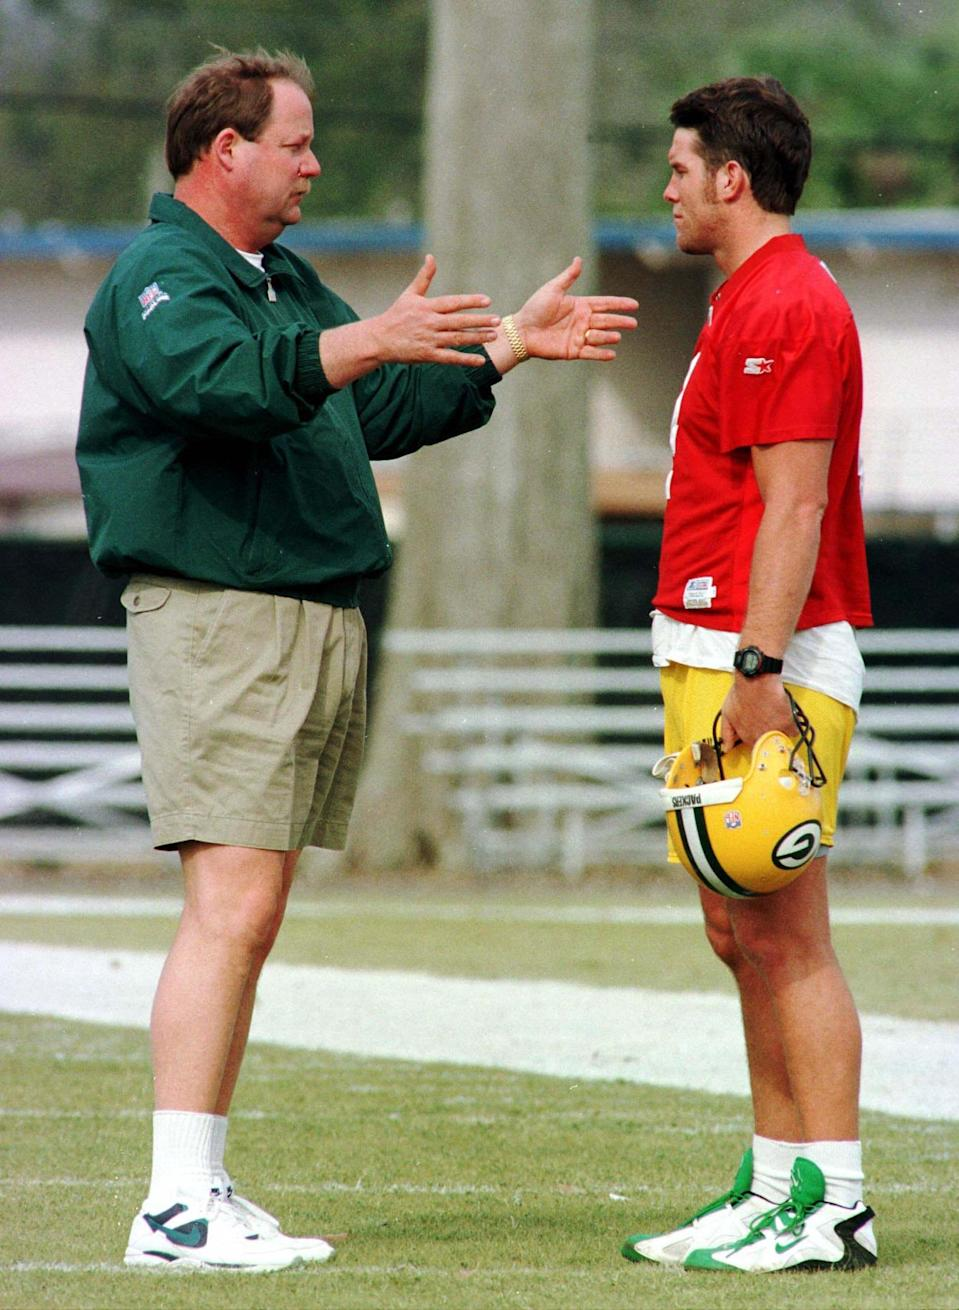 Mike Holmgren and Brett Favre helped transform the Packers franchise. Would the same have happened with Troy Aikman and a different coach? (Reuters archive photo)